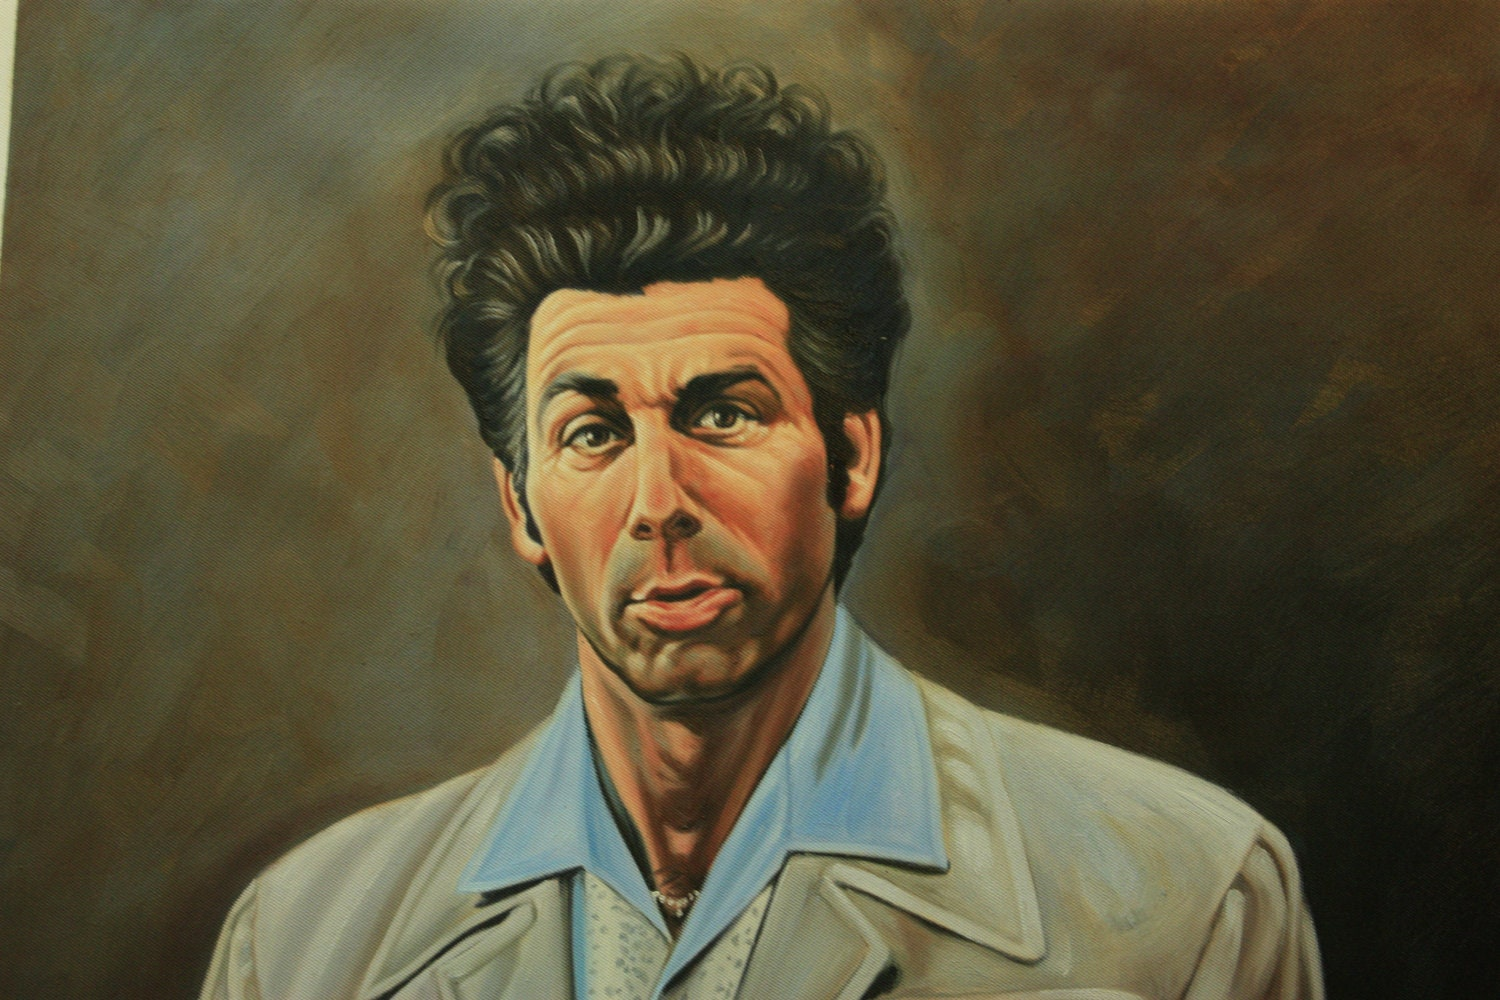 Seinfeld Cosmo Kramer reproduction painting 24x36. 100%